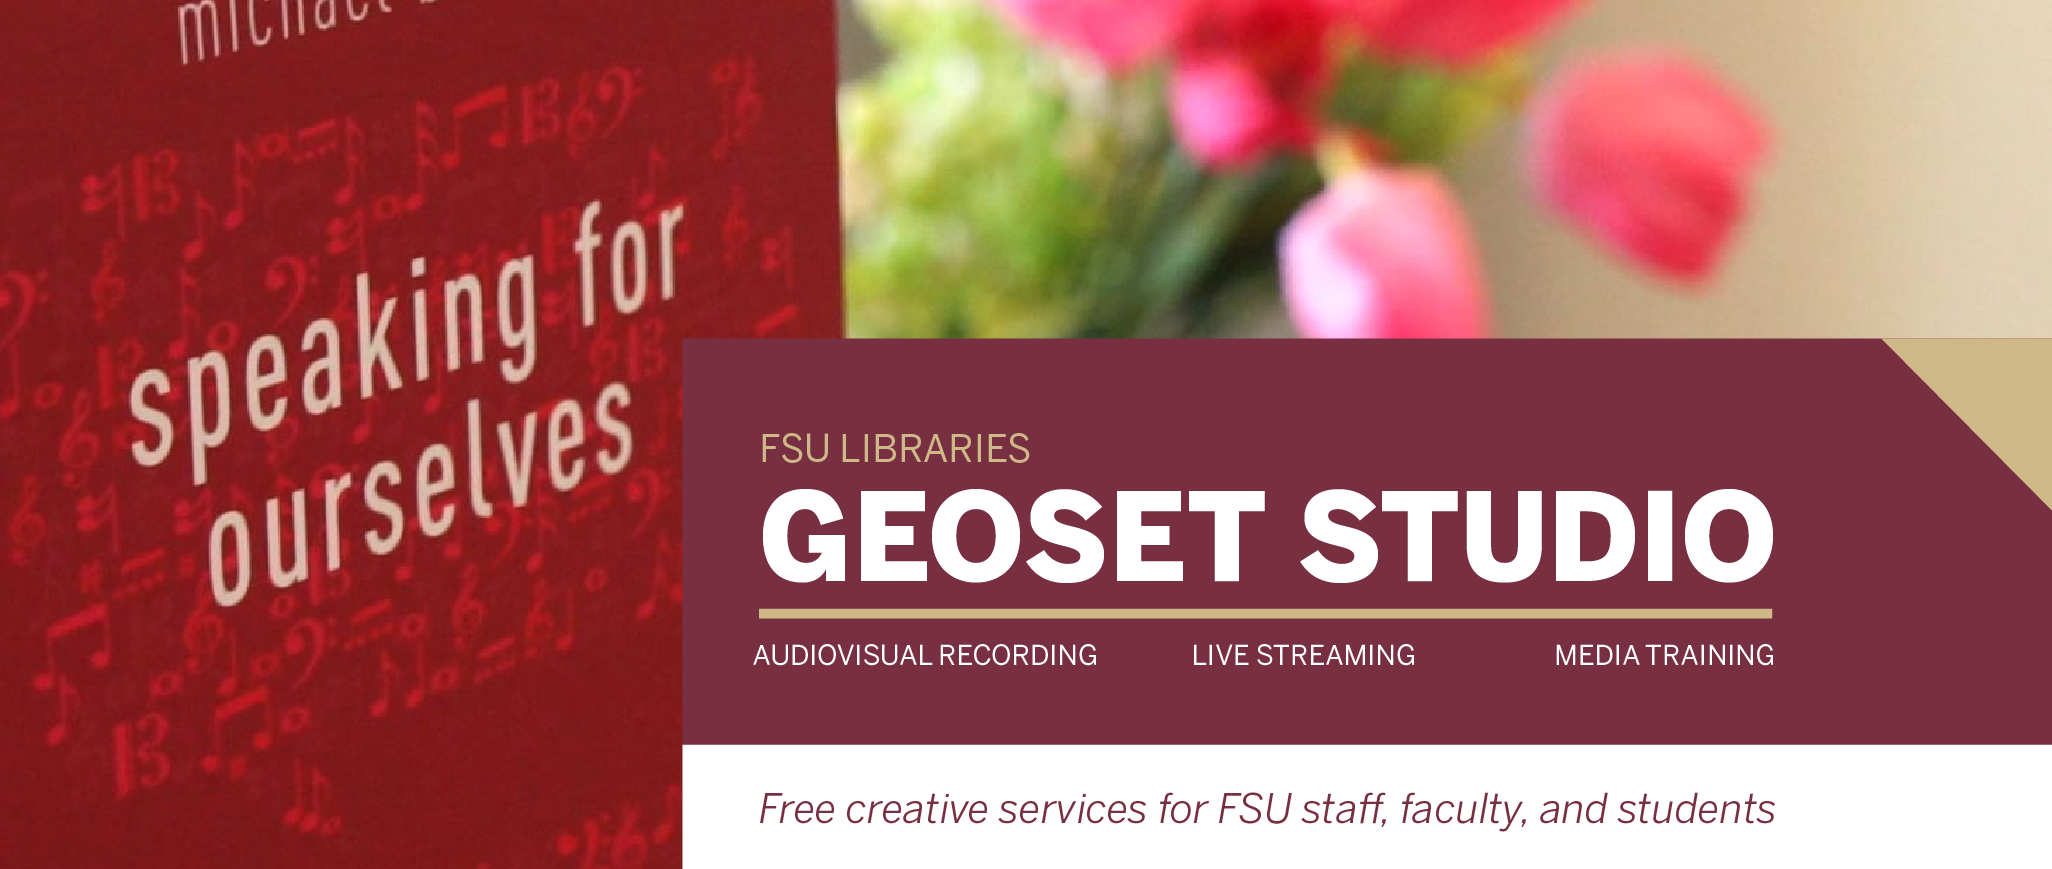 The GEOSET Studio offers creative media services and training to FSU staff, faculty, and students